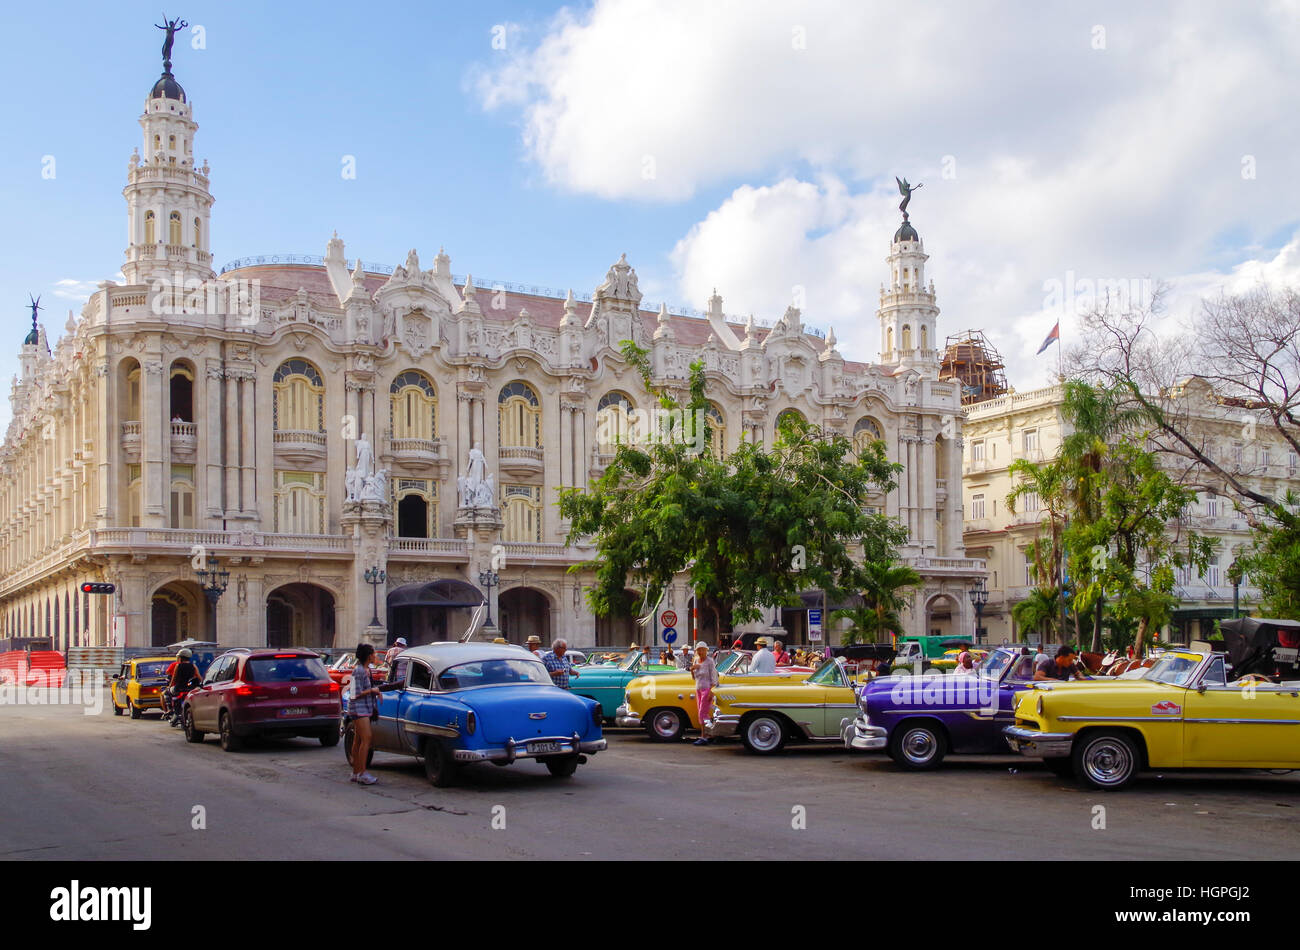 Gran Teatro de La Habana alias Großes Theater in Havanna in Havanna, Kuba Stockbild